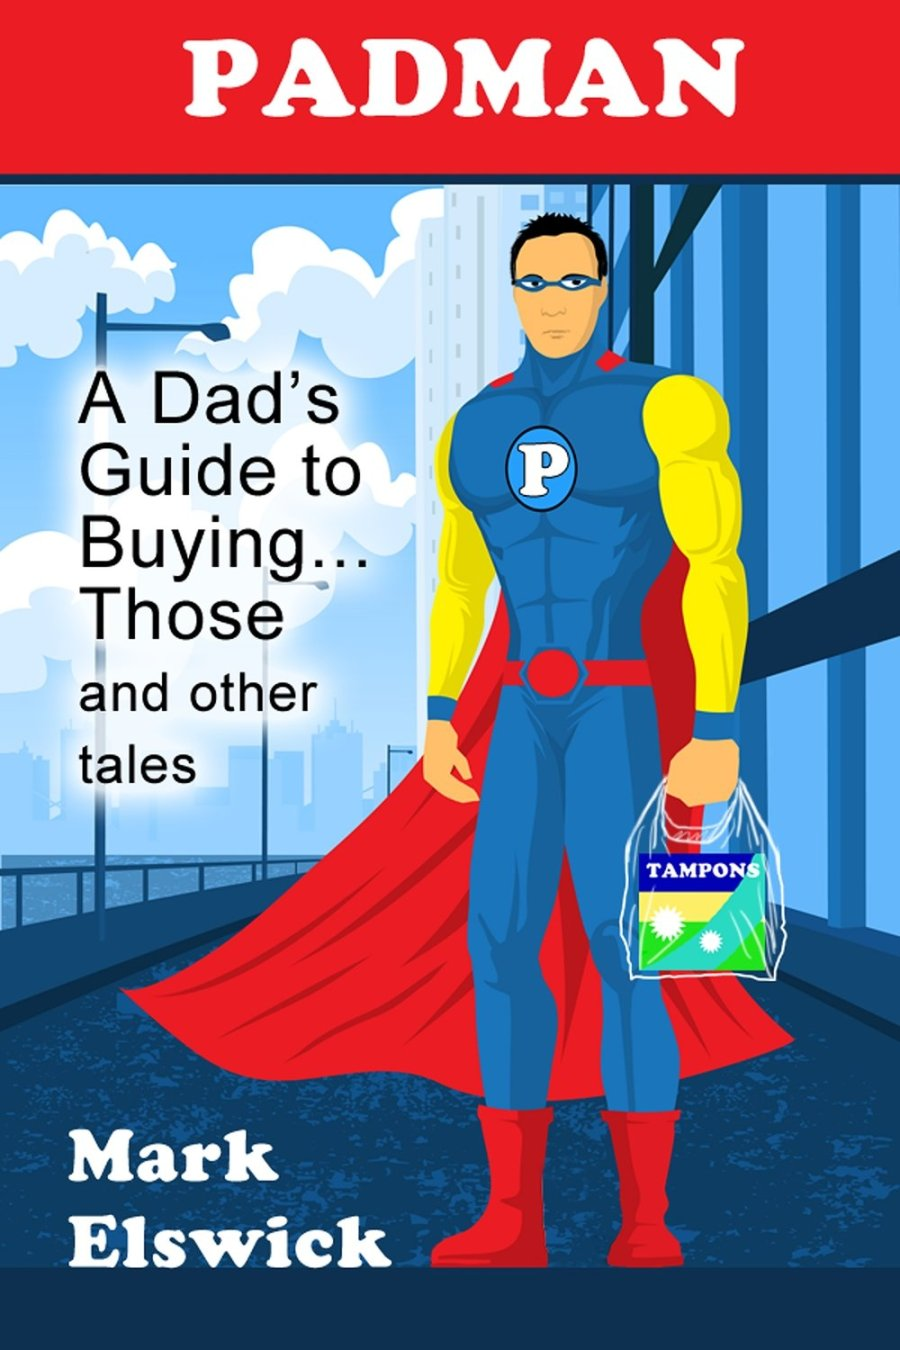 Padman: A Dad's Guide to Buying... Those and other tales